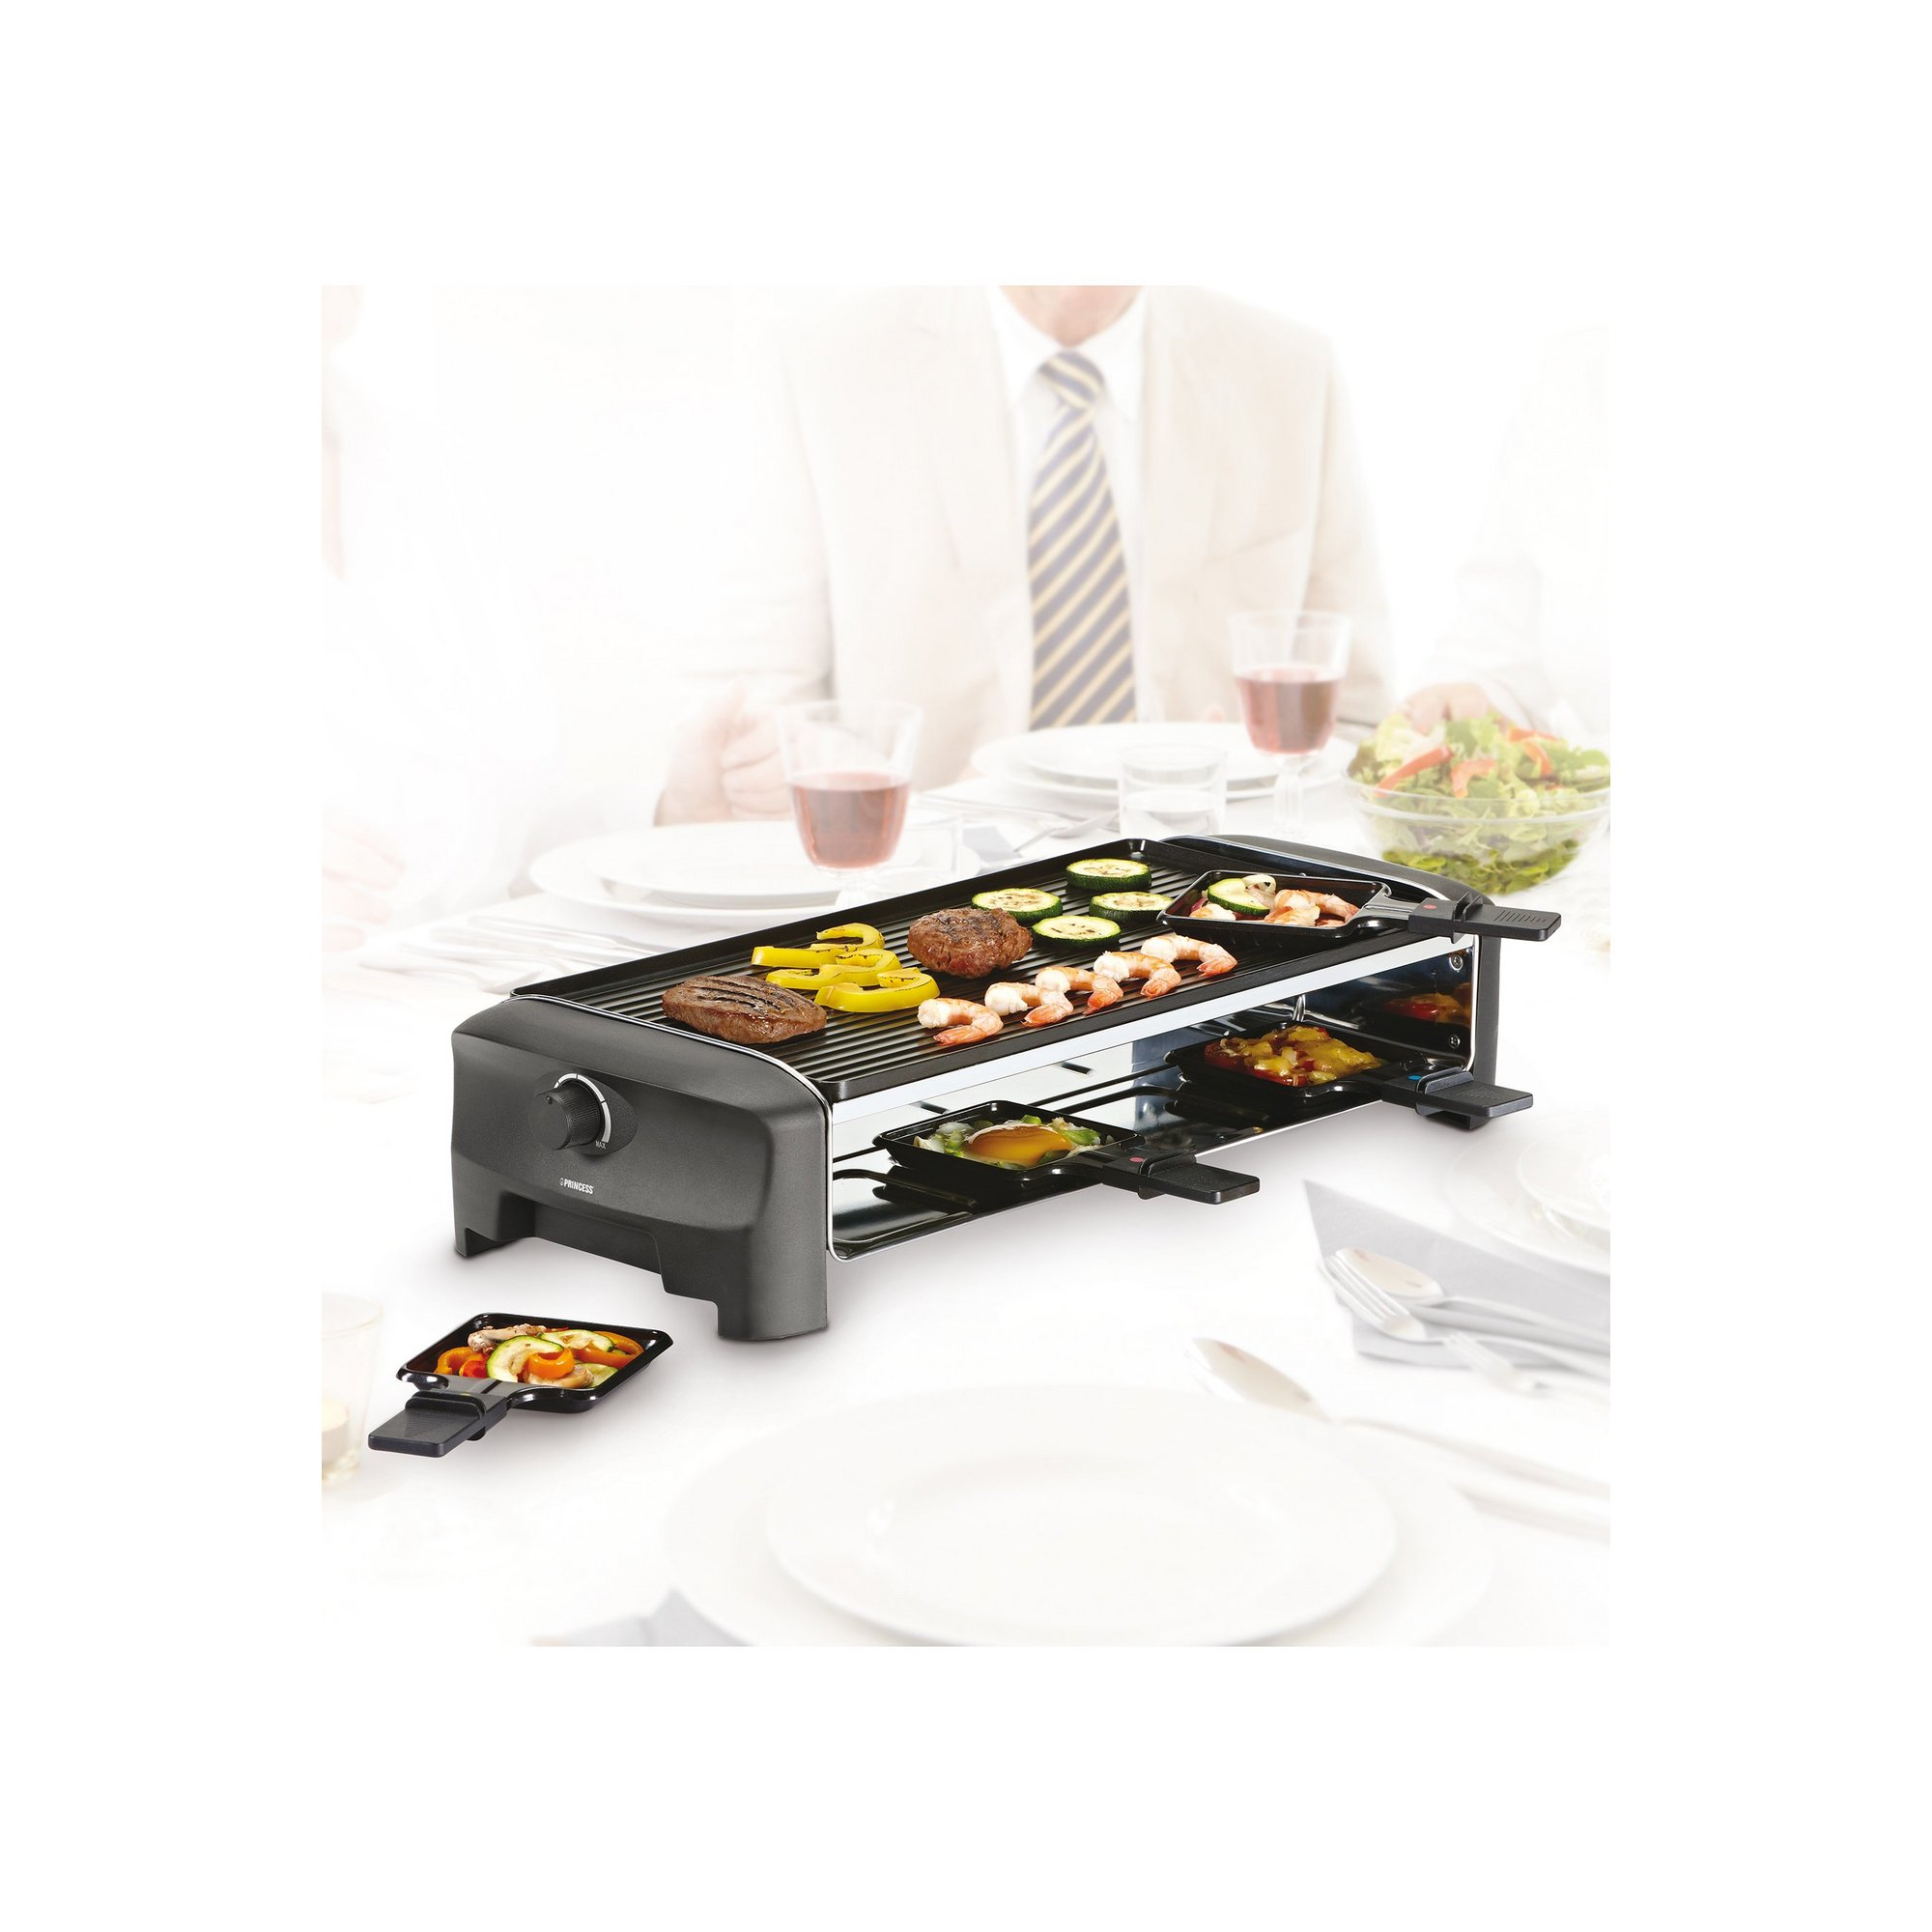 Image of Princess Raclette 8 Person Oval Stone and Teppanyaki Party